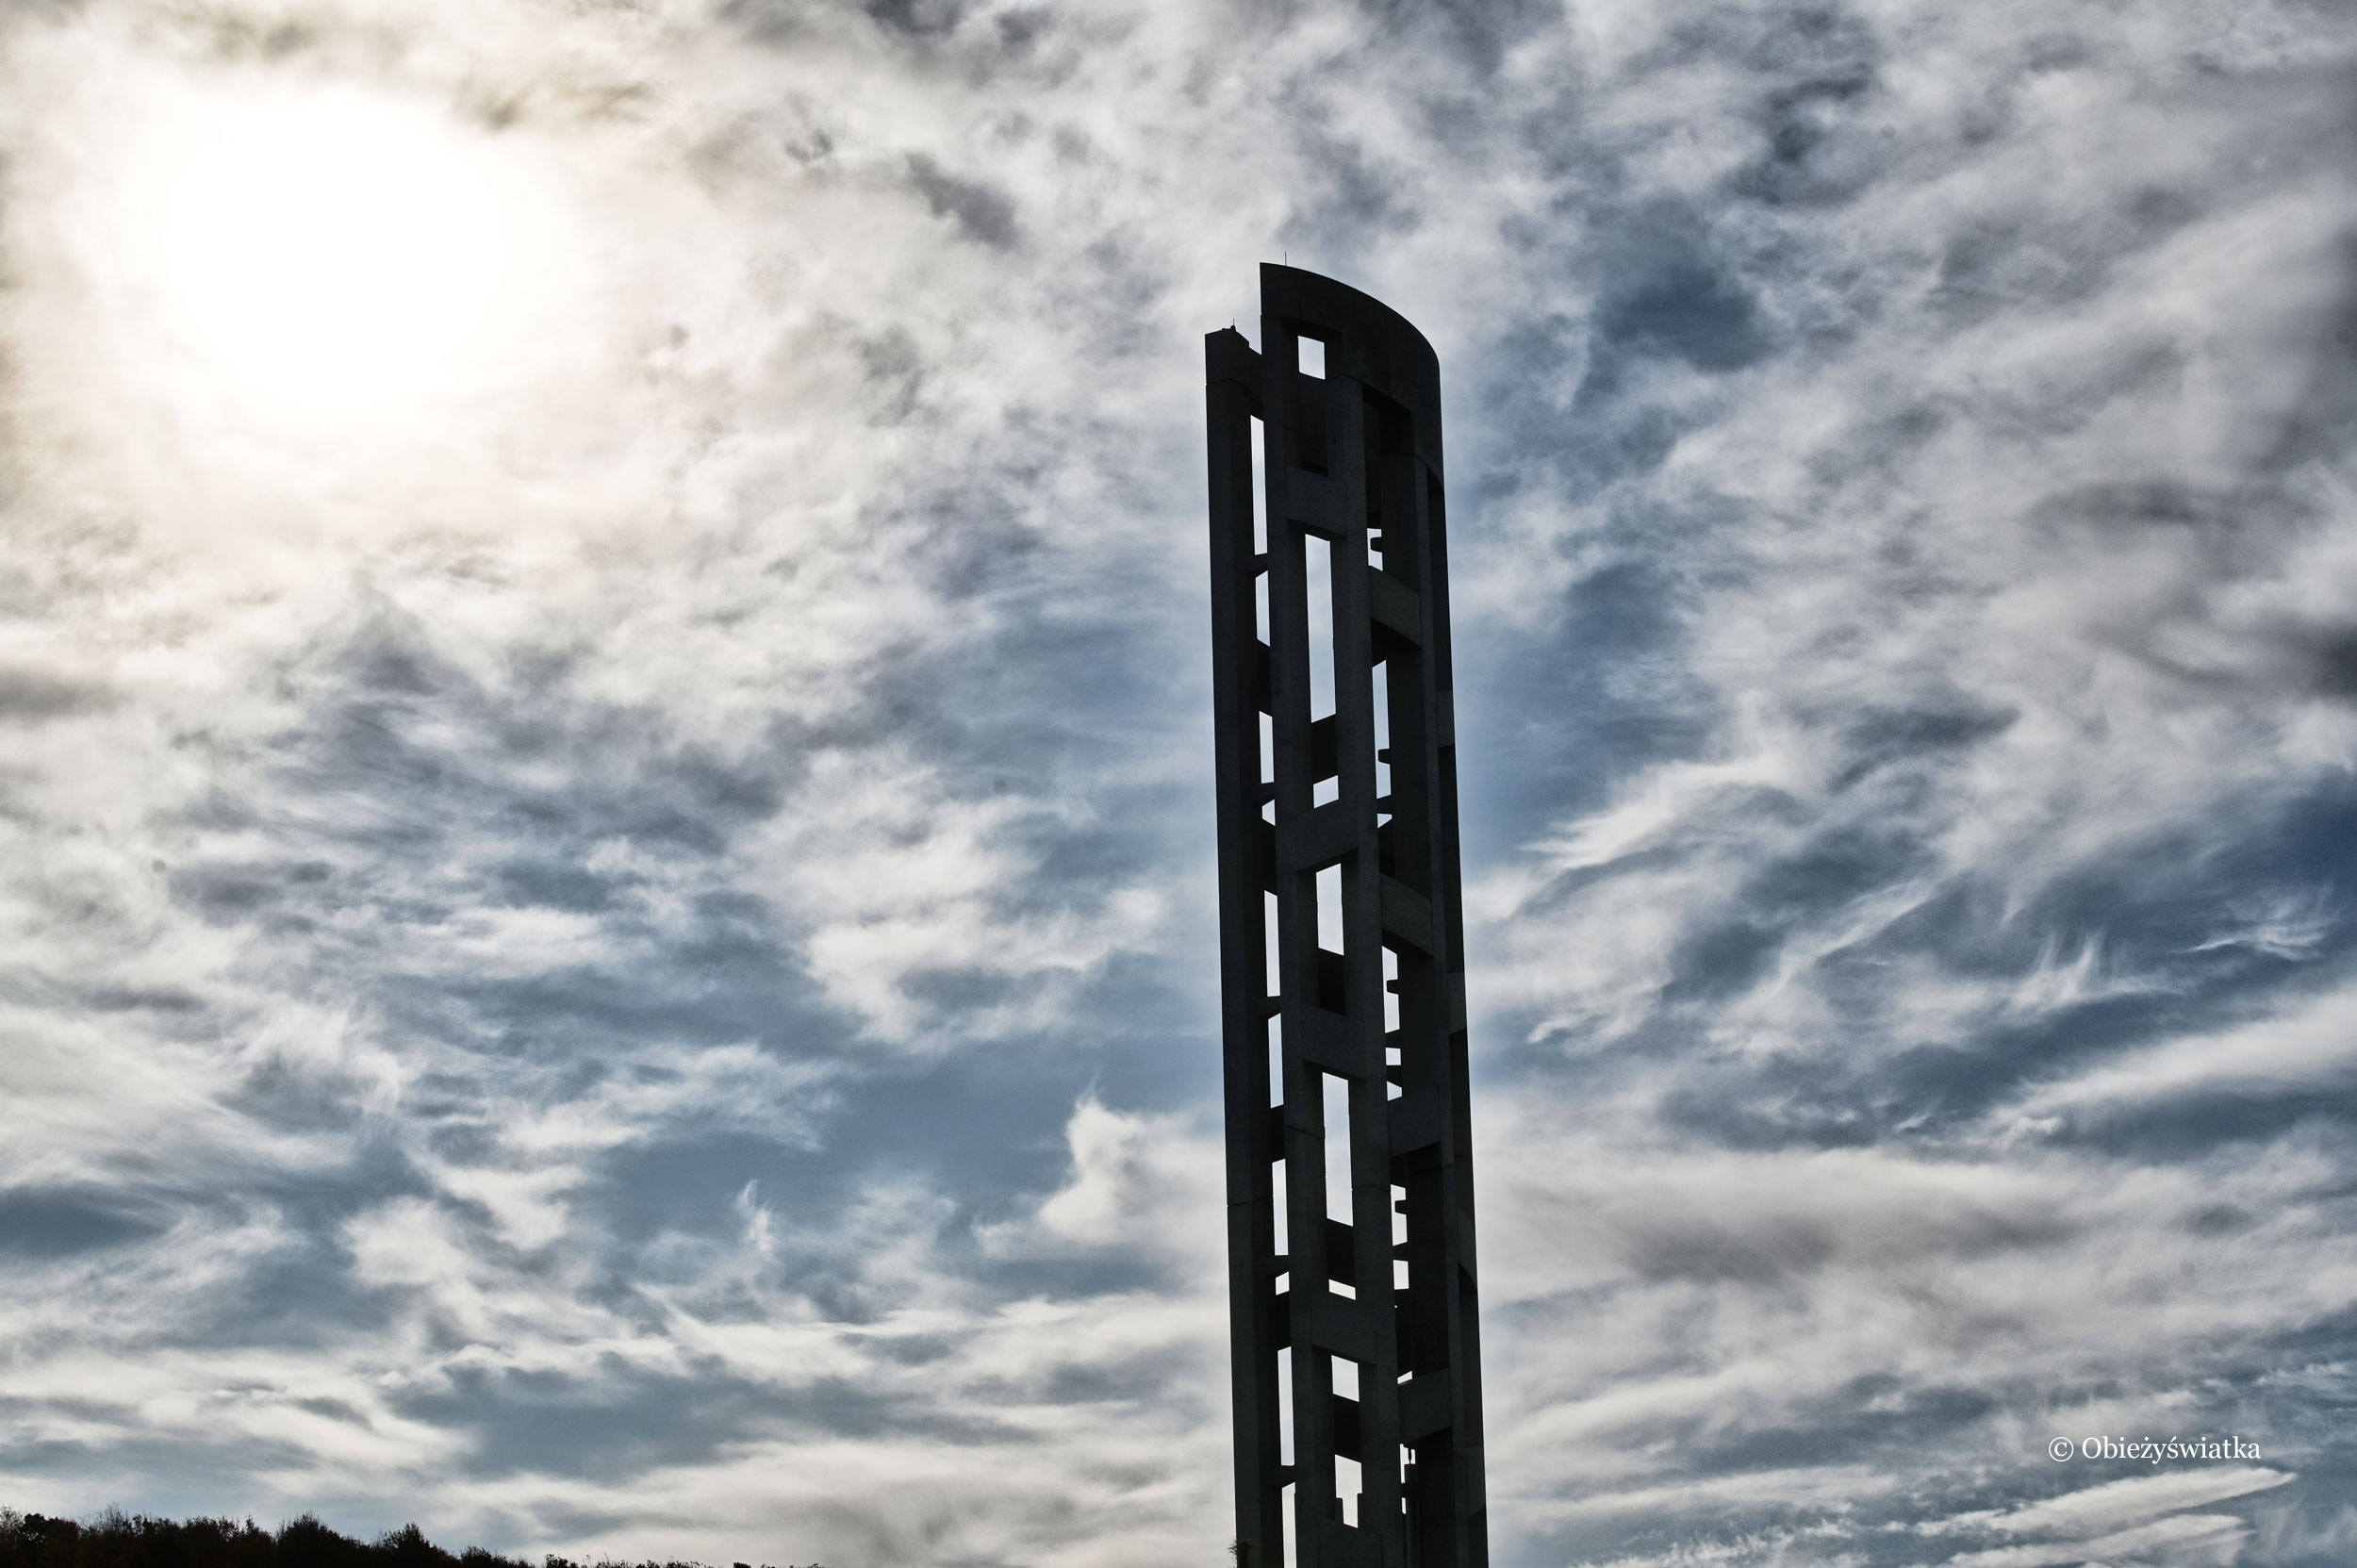 Tower of Voices, Flight 93 National Memorial, Pennsylvania, USA